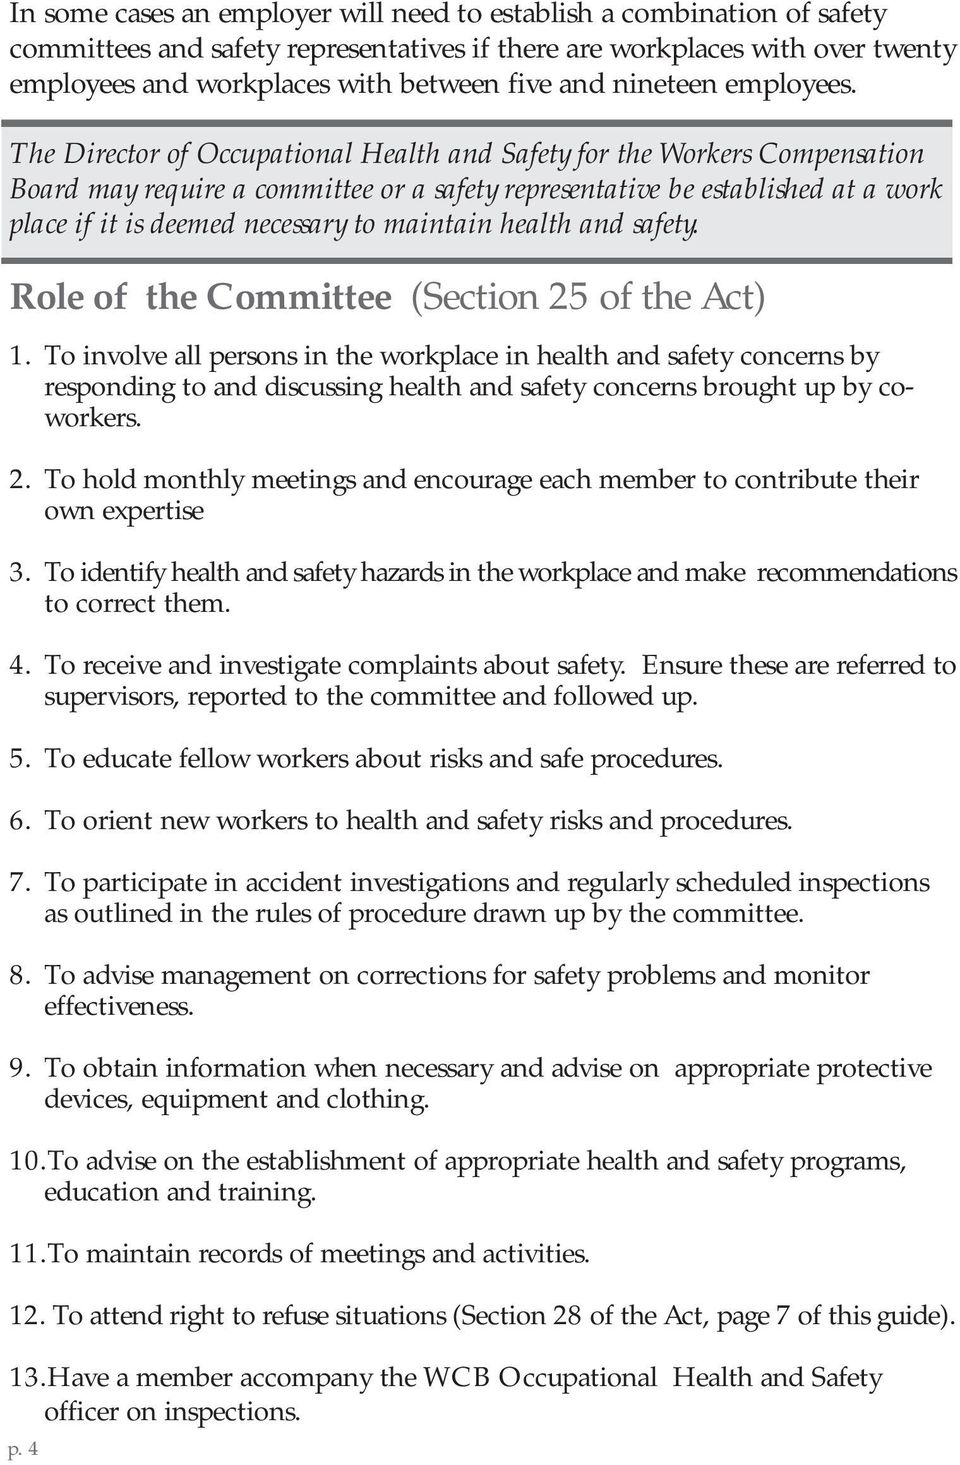 The Director of Occupational Health and Safety for the Workers Compensation Board may require a committee or a safety representative be established at a work place if it is deemed necessary to